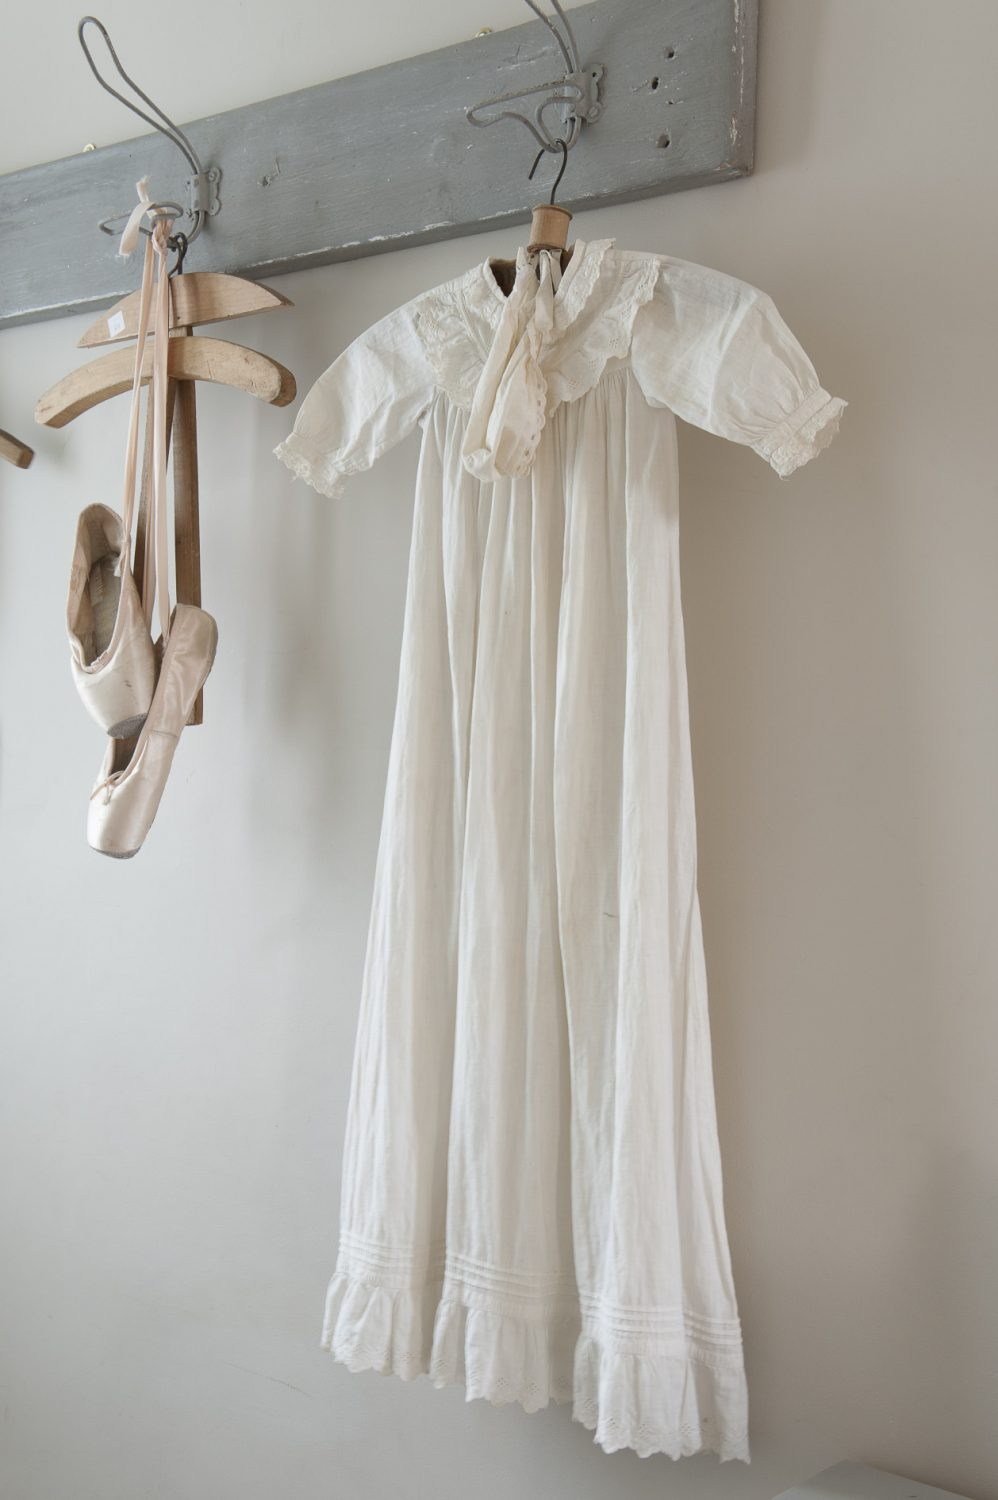 Bloch ballet shoes and a vintage christening robe hang on wire hooks by the front door